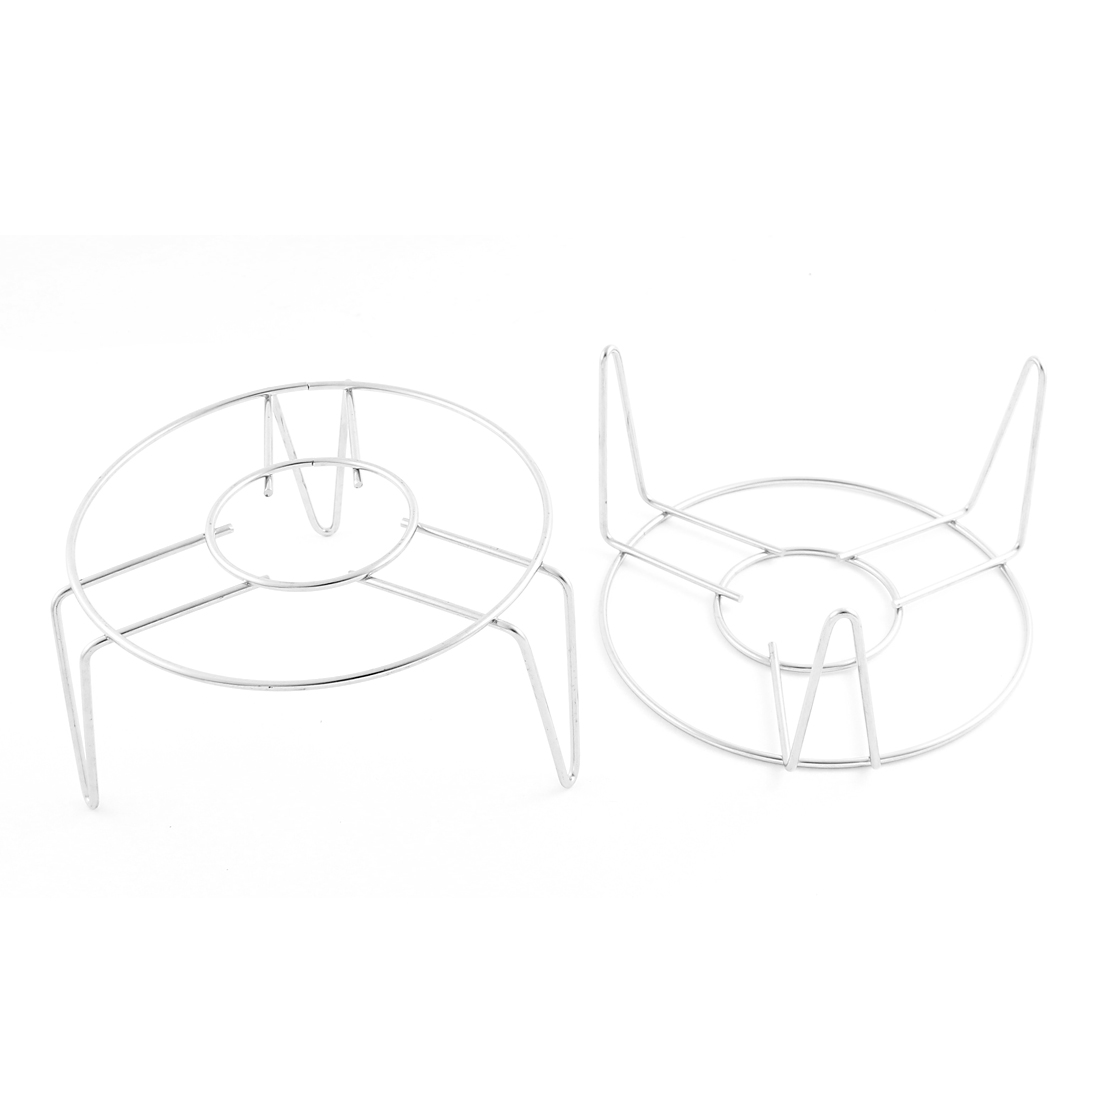 Kitchenware Metal Wire Round Food Steaming Rack Stand 14cm Diameter 2pcs Silver Tone